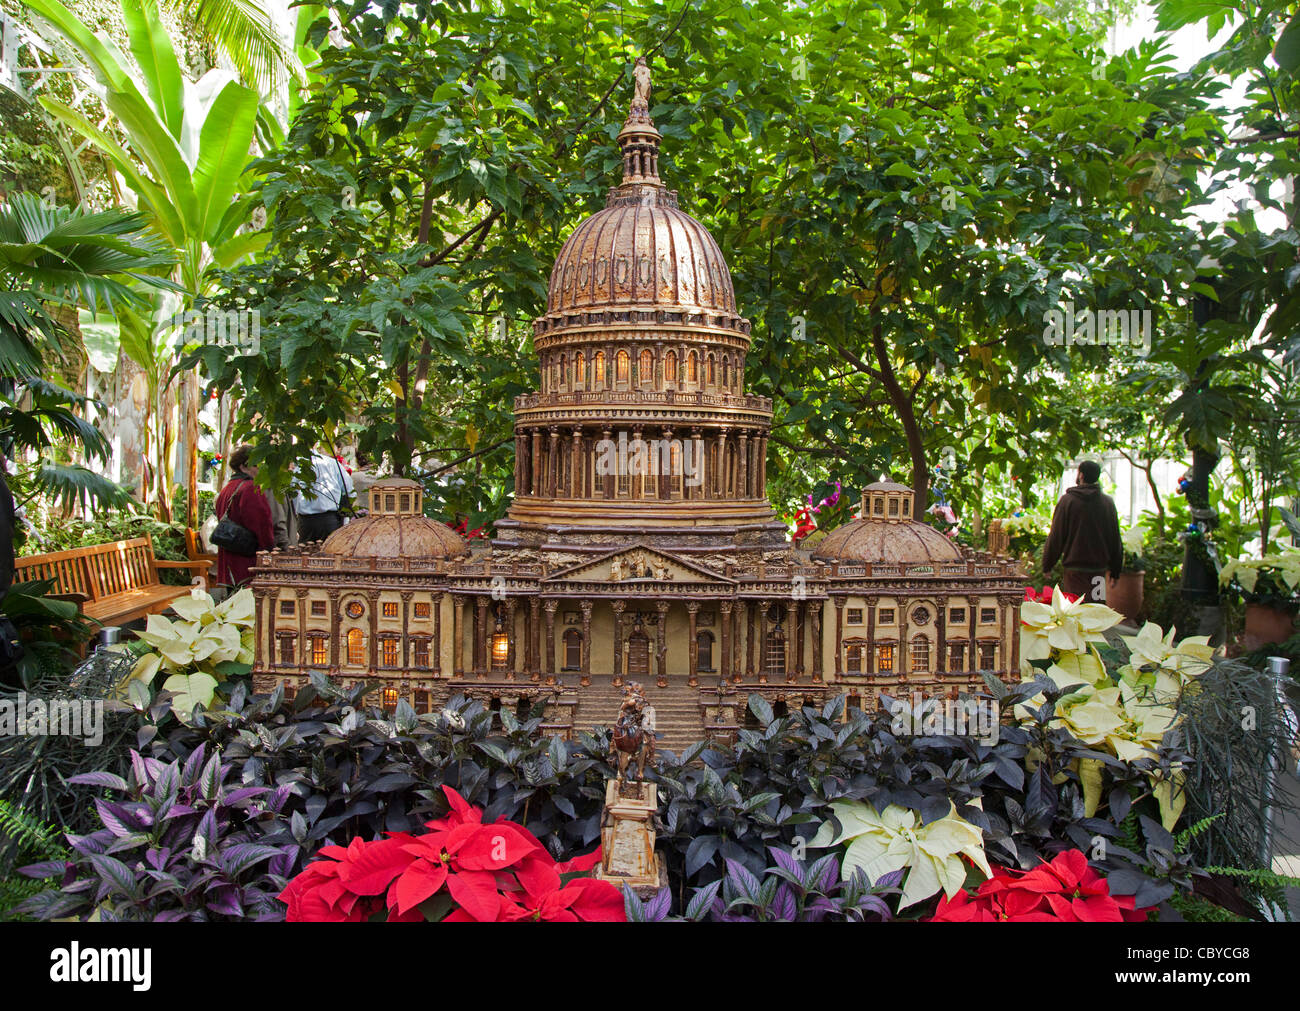 U S Botanic Garden Stock Photos & U S Botanic Garden Stock Images ...